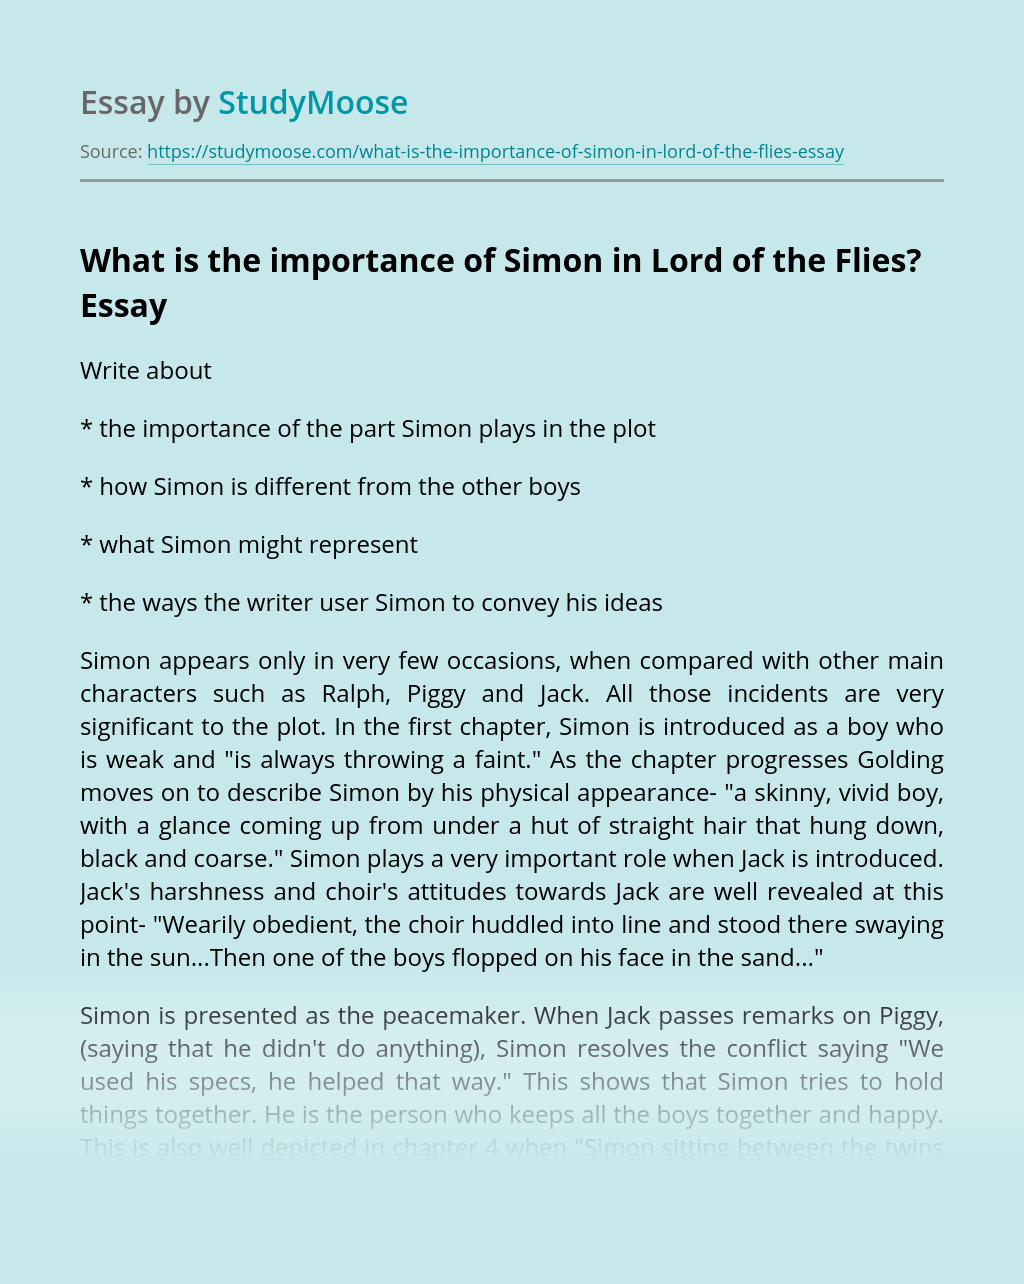 What is the importance of Simon in Lord of the Flies?